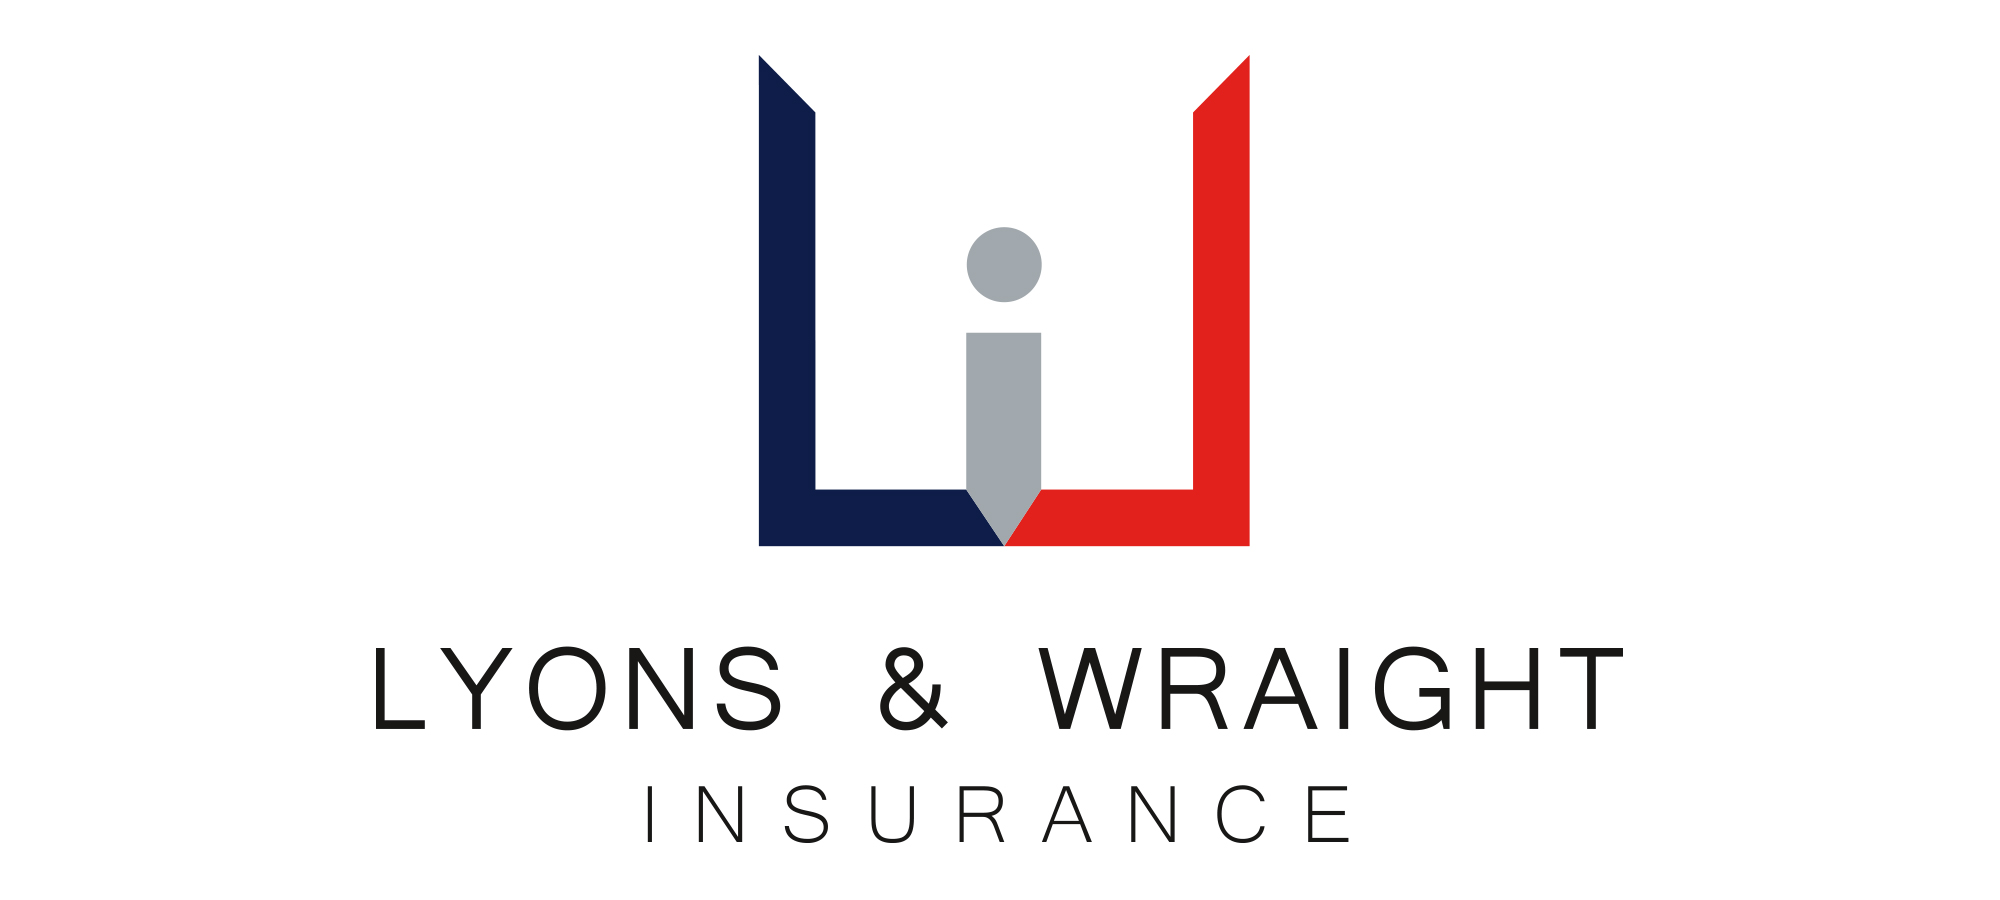 Lyons & Wraight Insurance, LLC